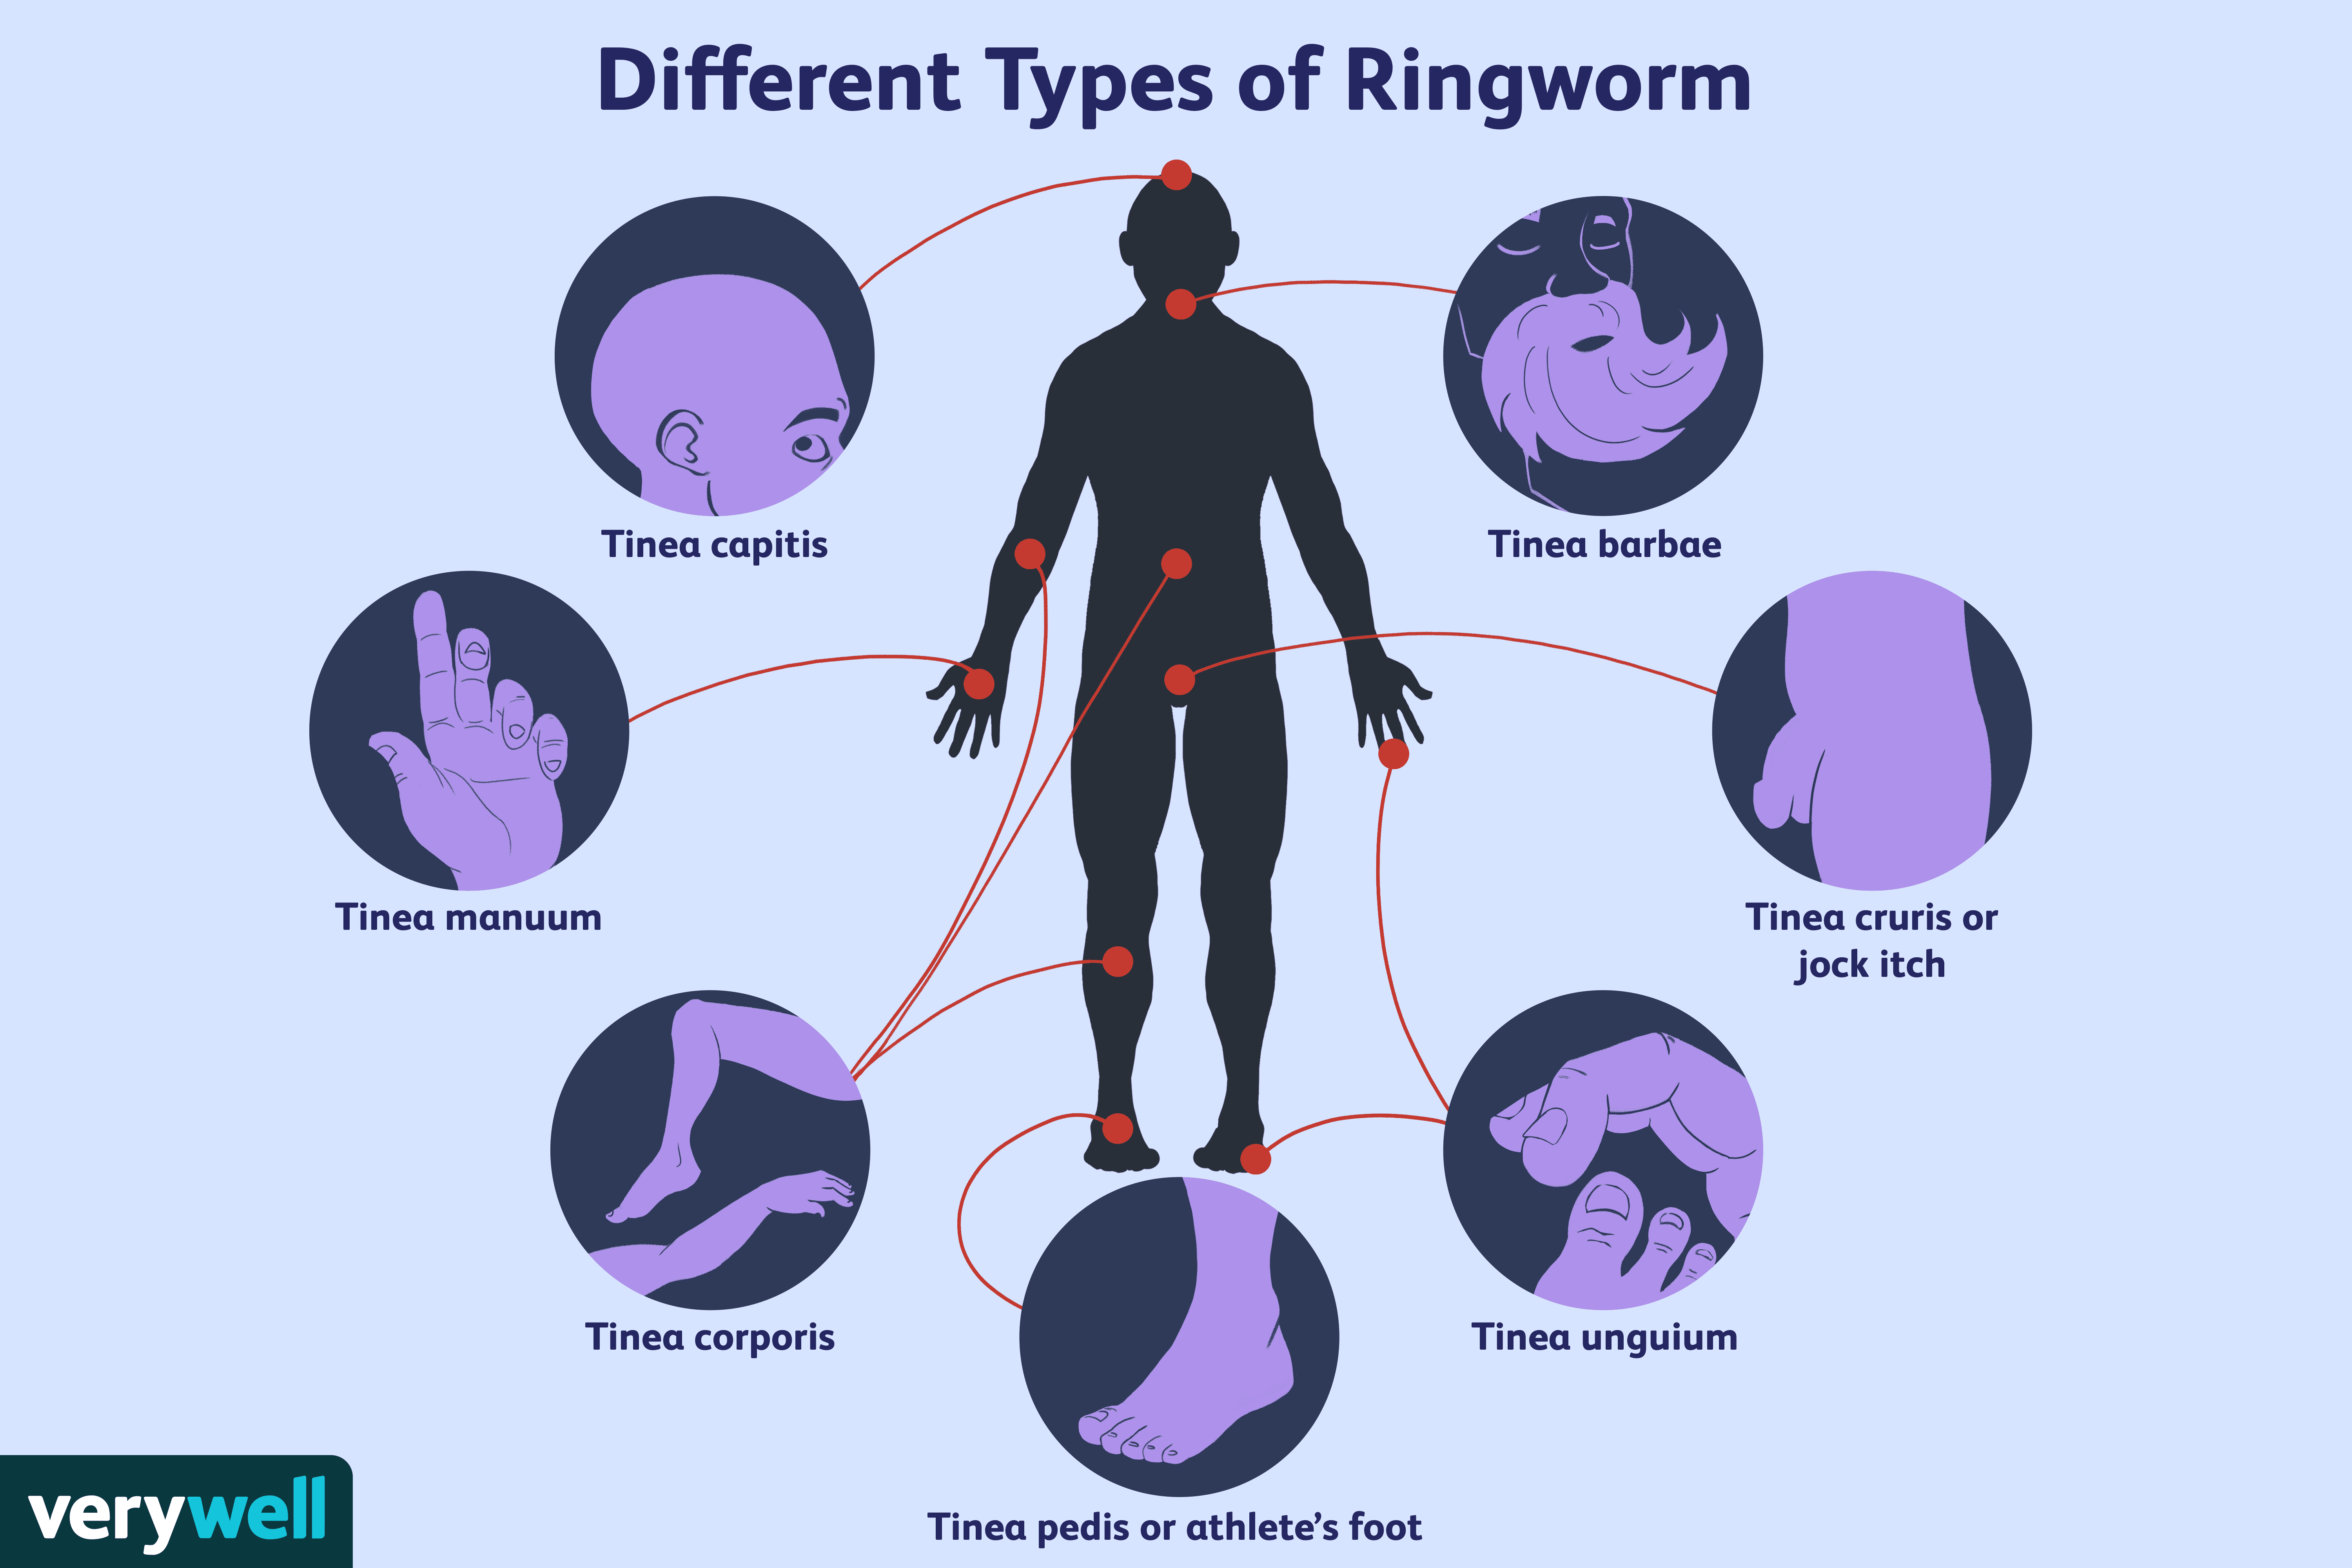 Different Types of Ringworm